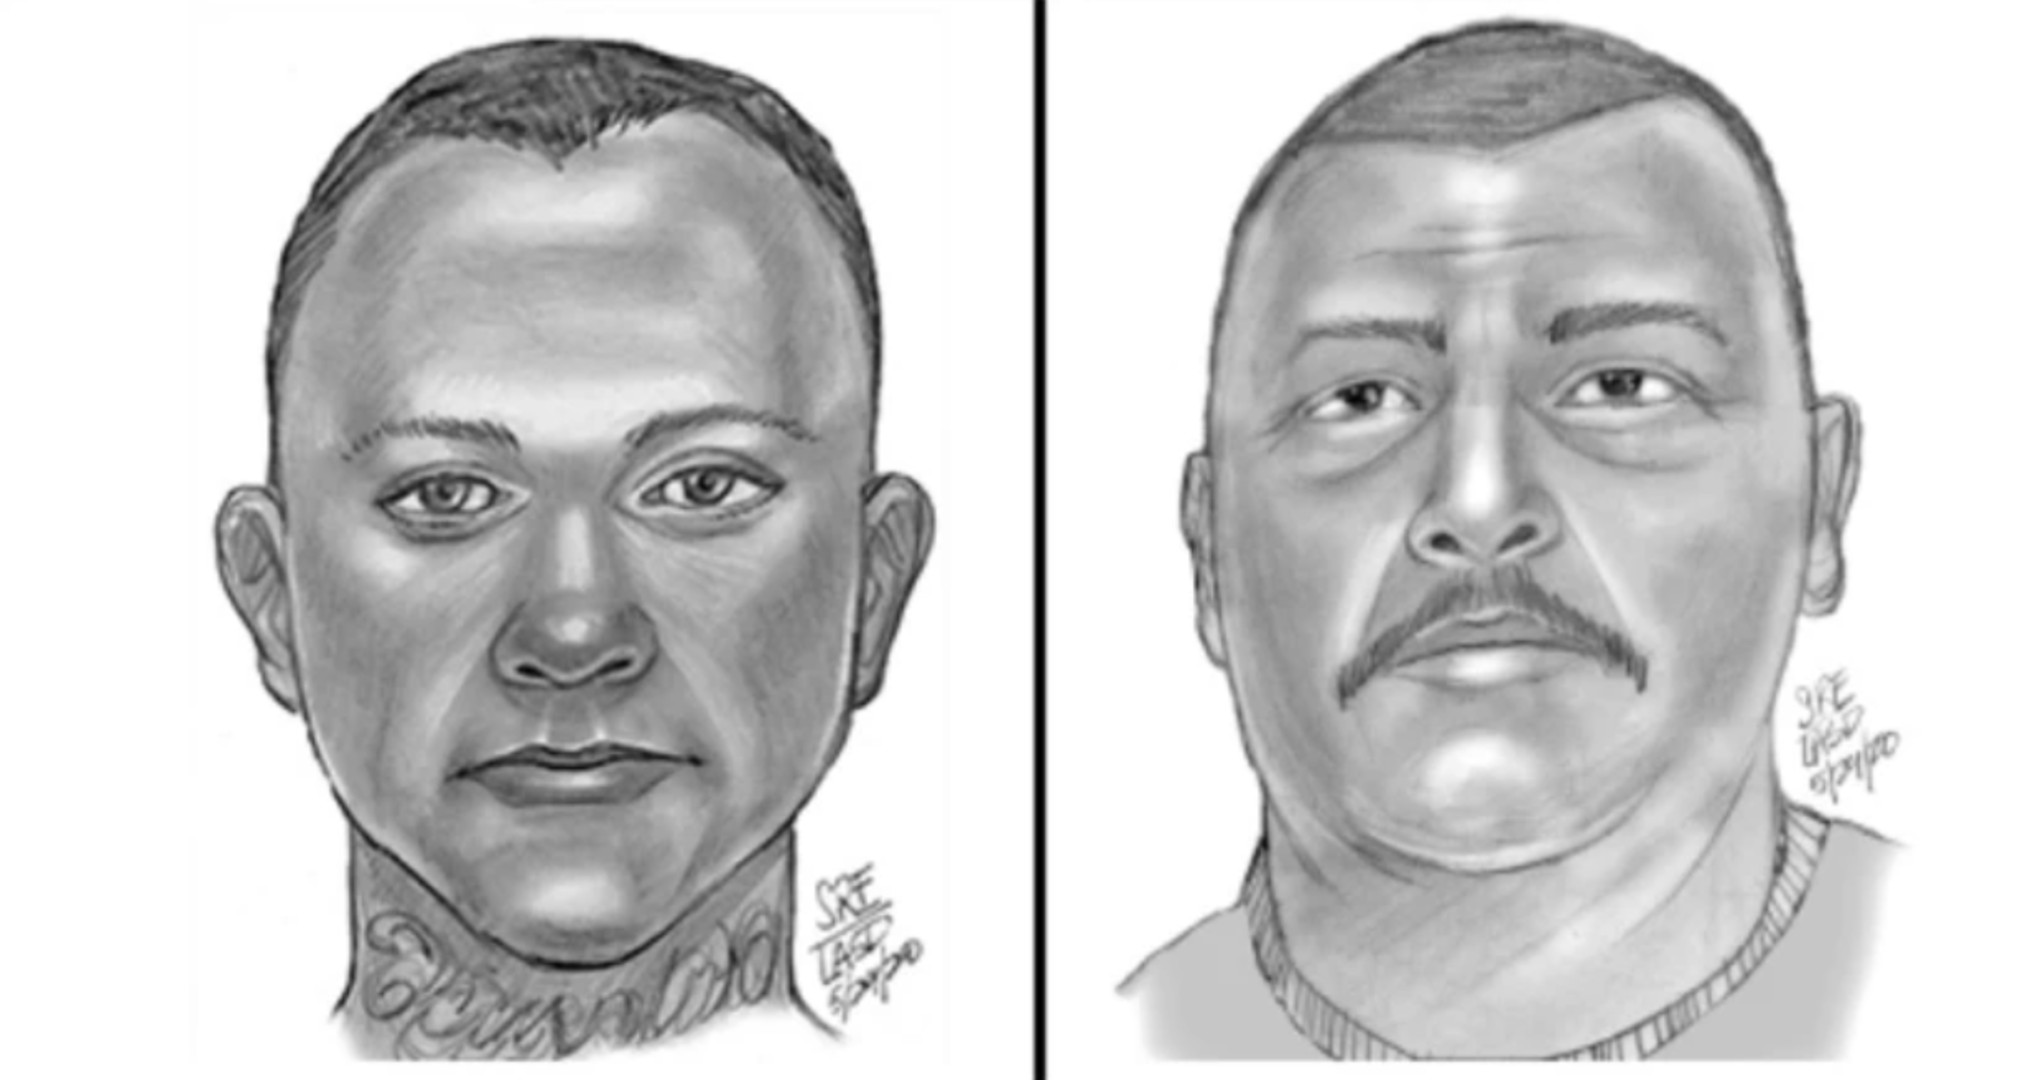 The Los Angeles County Sheriff's Department released these suspect sketches of the two men.